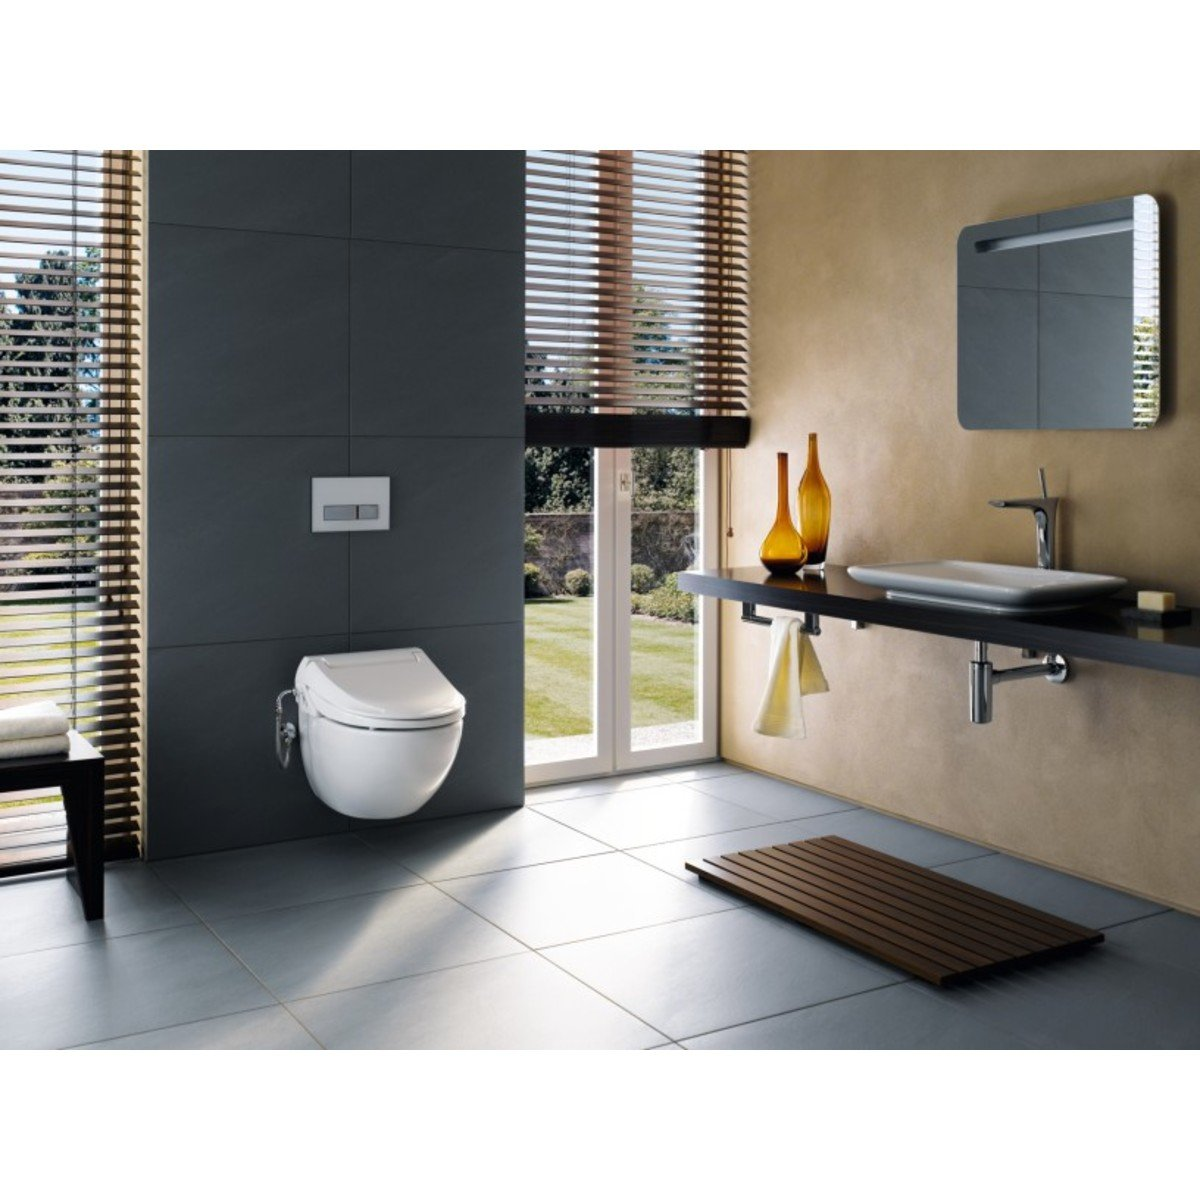 geberit aquaclean 4000 douche wc zitting met wandcloset wit 146135111. Black Bedroom Furniture Sets. Home Design Ideas